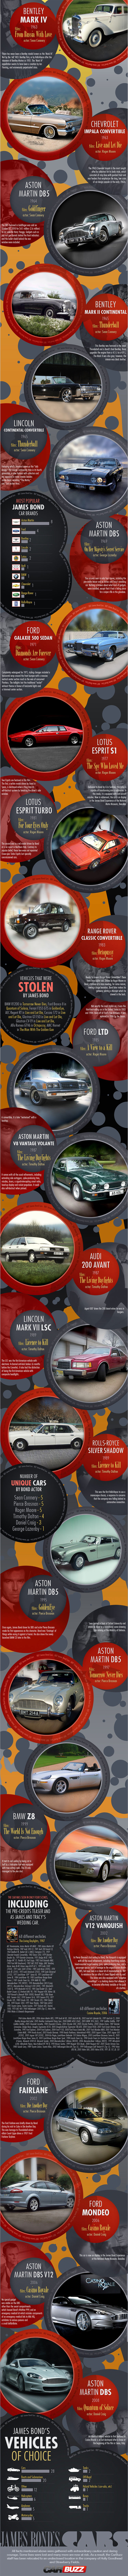 James Bond Vehicles-infographic